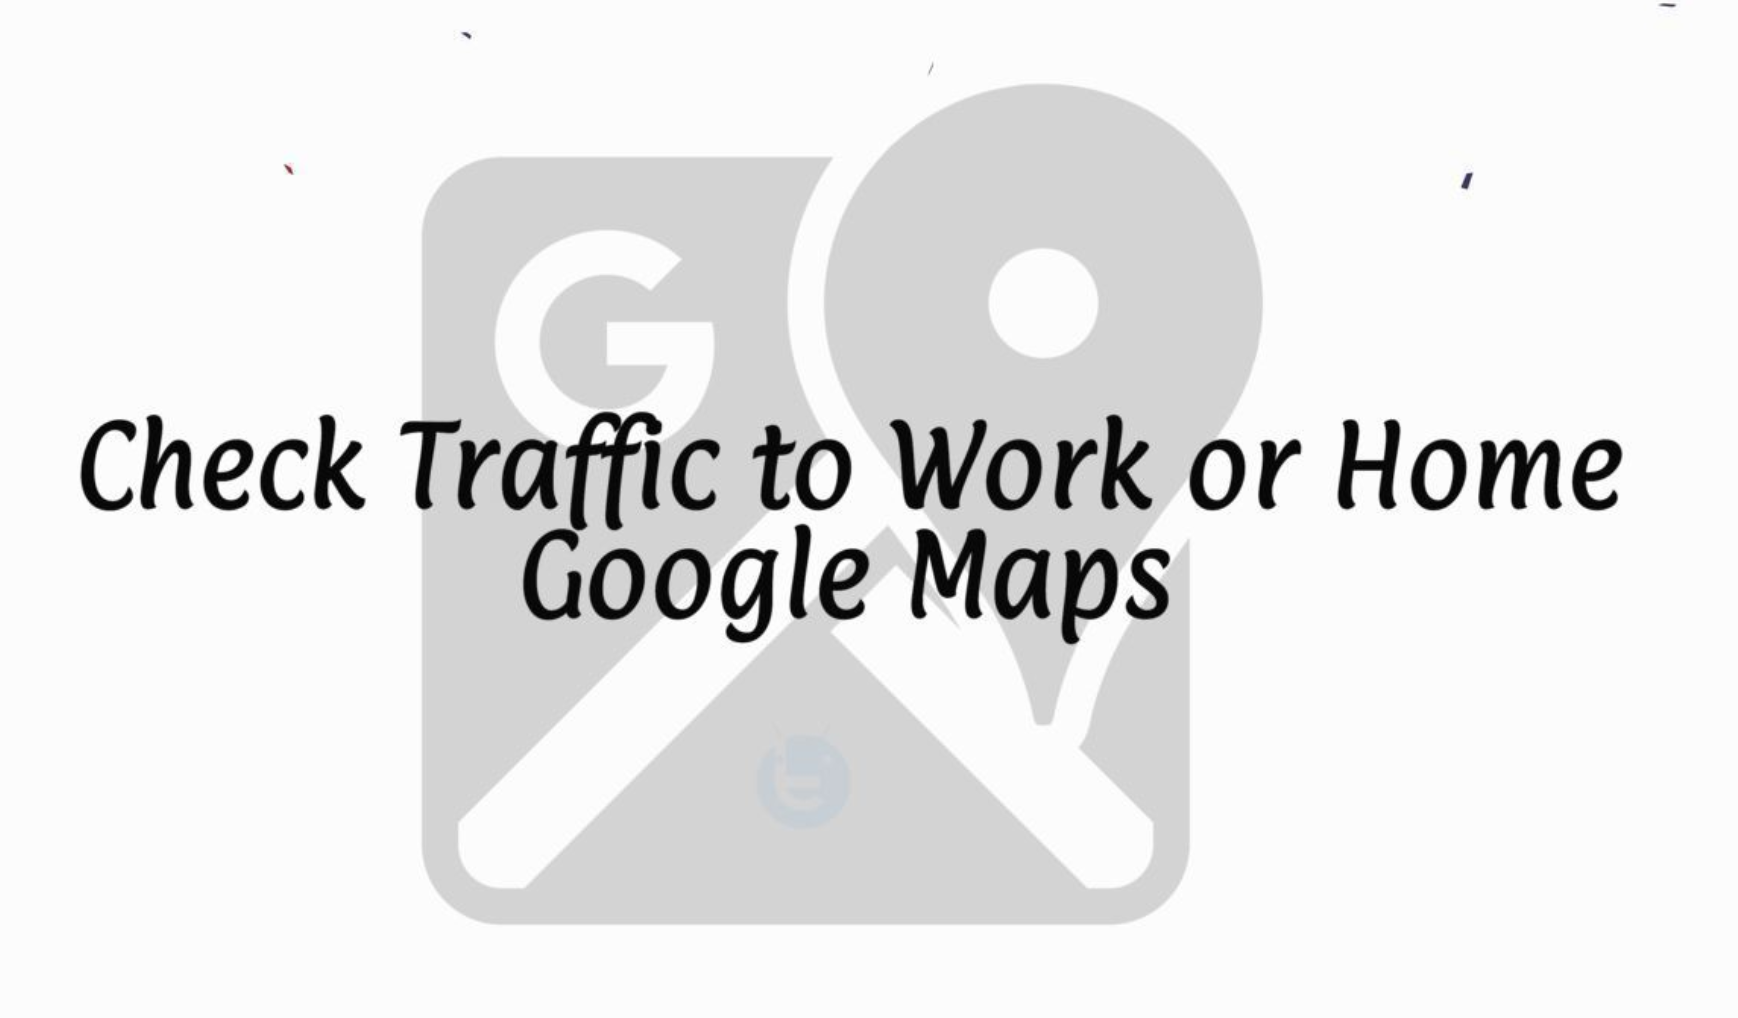 Check Traffic to Work or Home